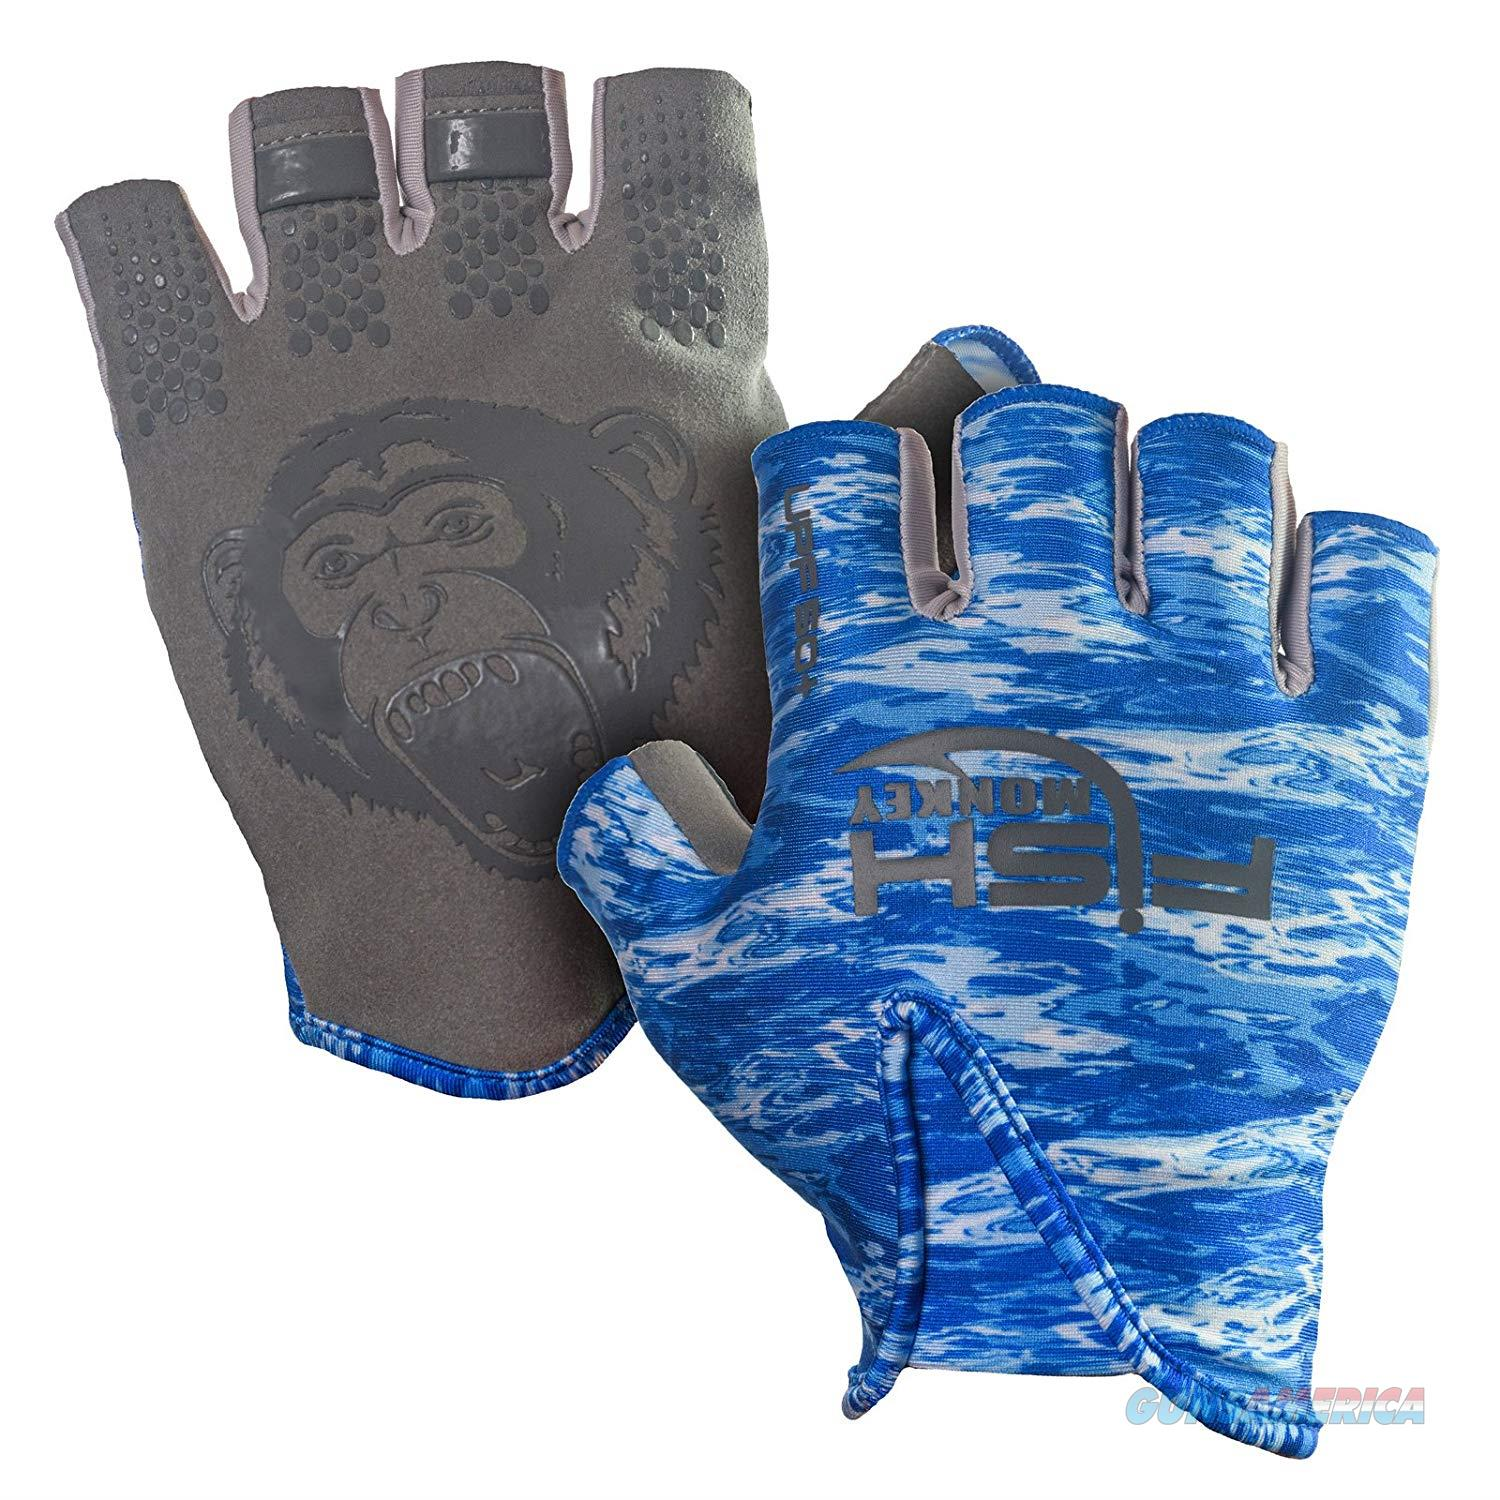 Fish Monkey Stubby Guide Glove Blue MD  Non-Guns > Hunting Clothing and Equipment > Clothing > Gloves